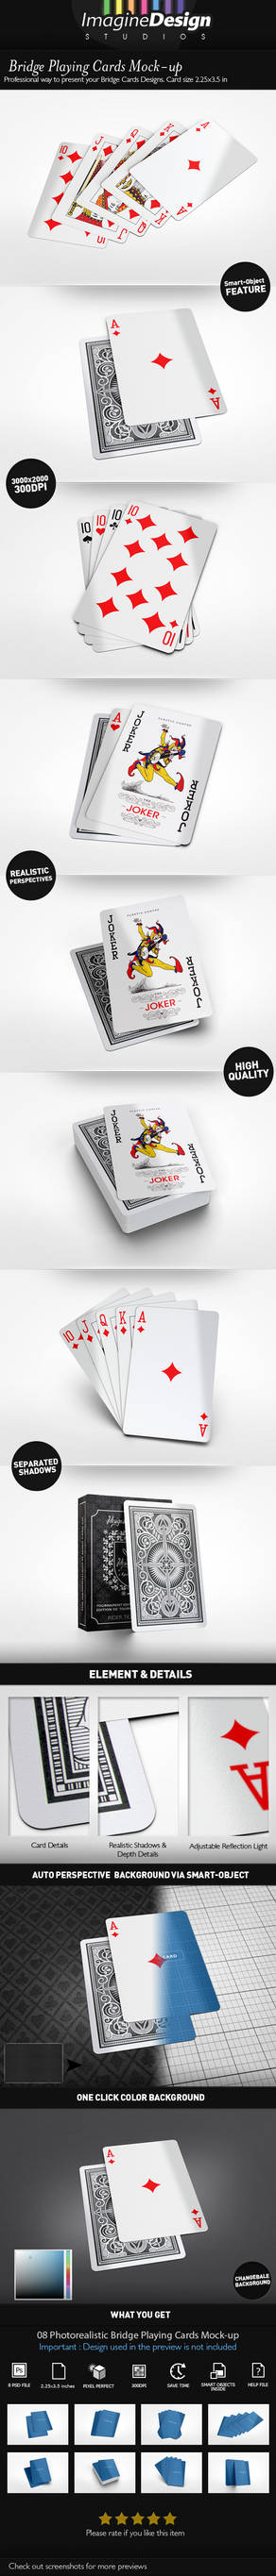 Bridge Playing Cards Mock-up by idesignstudio